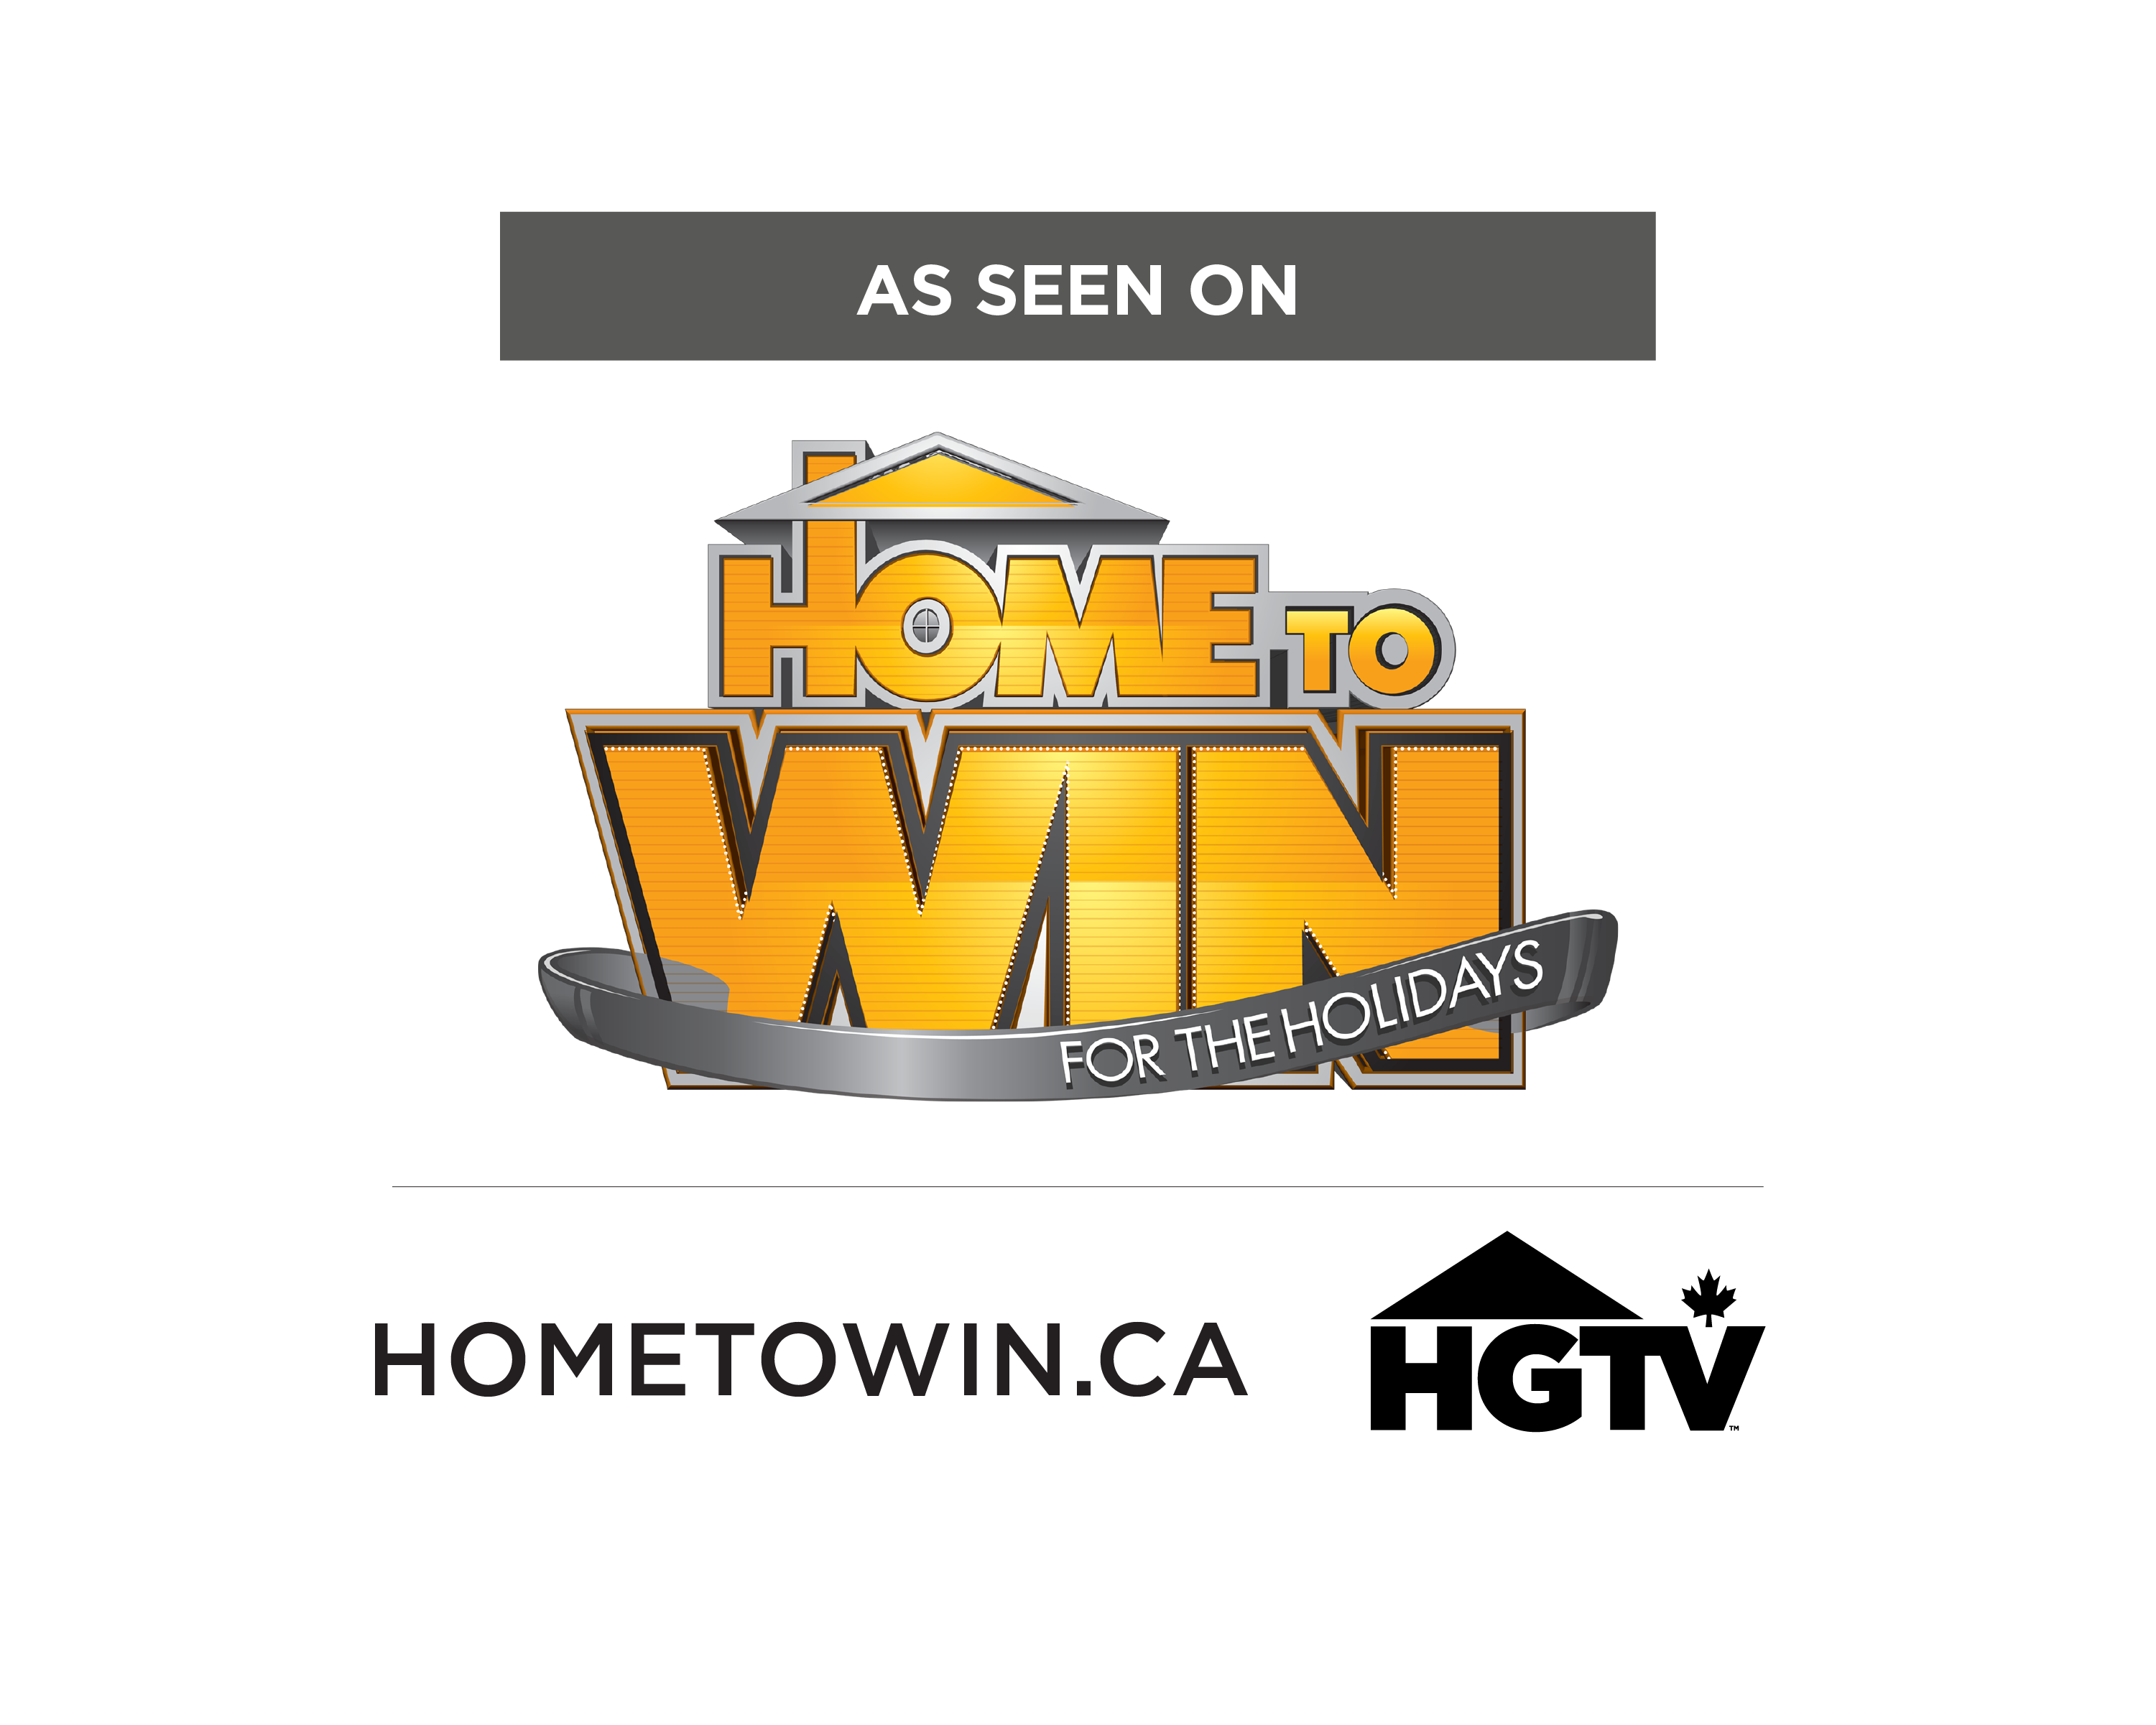 As seen on Home to Win - hometowin.ca